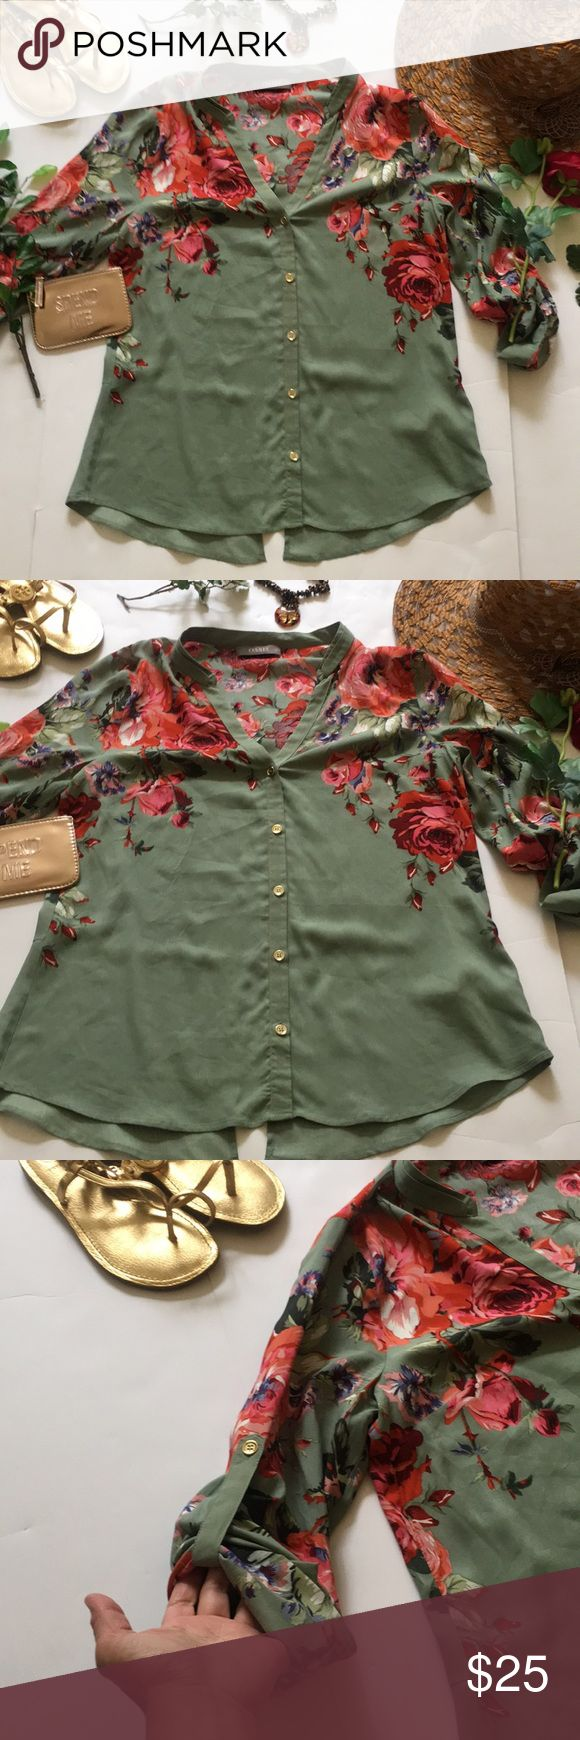 ❤Oasis Top❤ ❤In great used condition Oasis Top in size 12 UK size 8 in US❤Has pretty floral prints on a shade of green❤ Oasis Tops